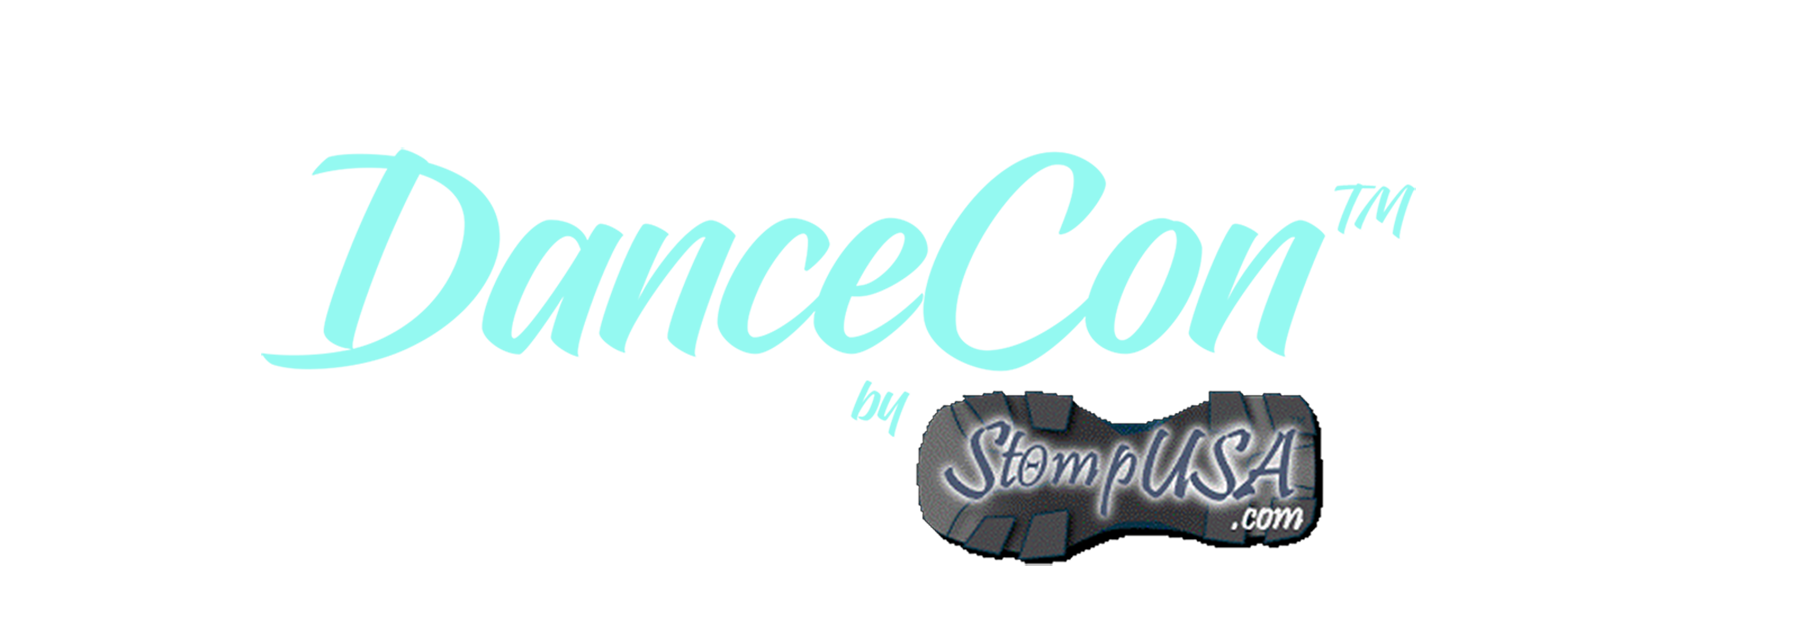 DanceCon Global Brand